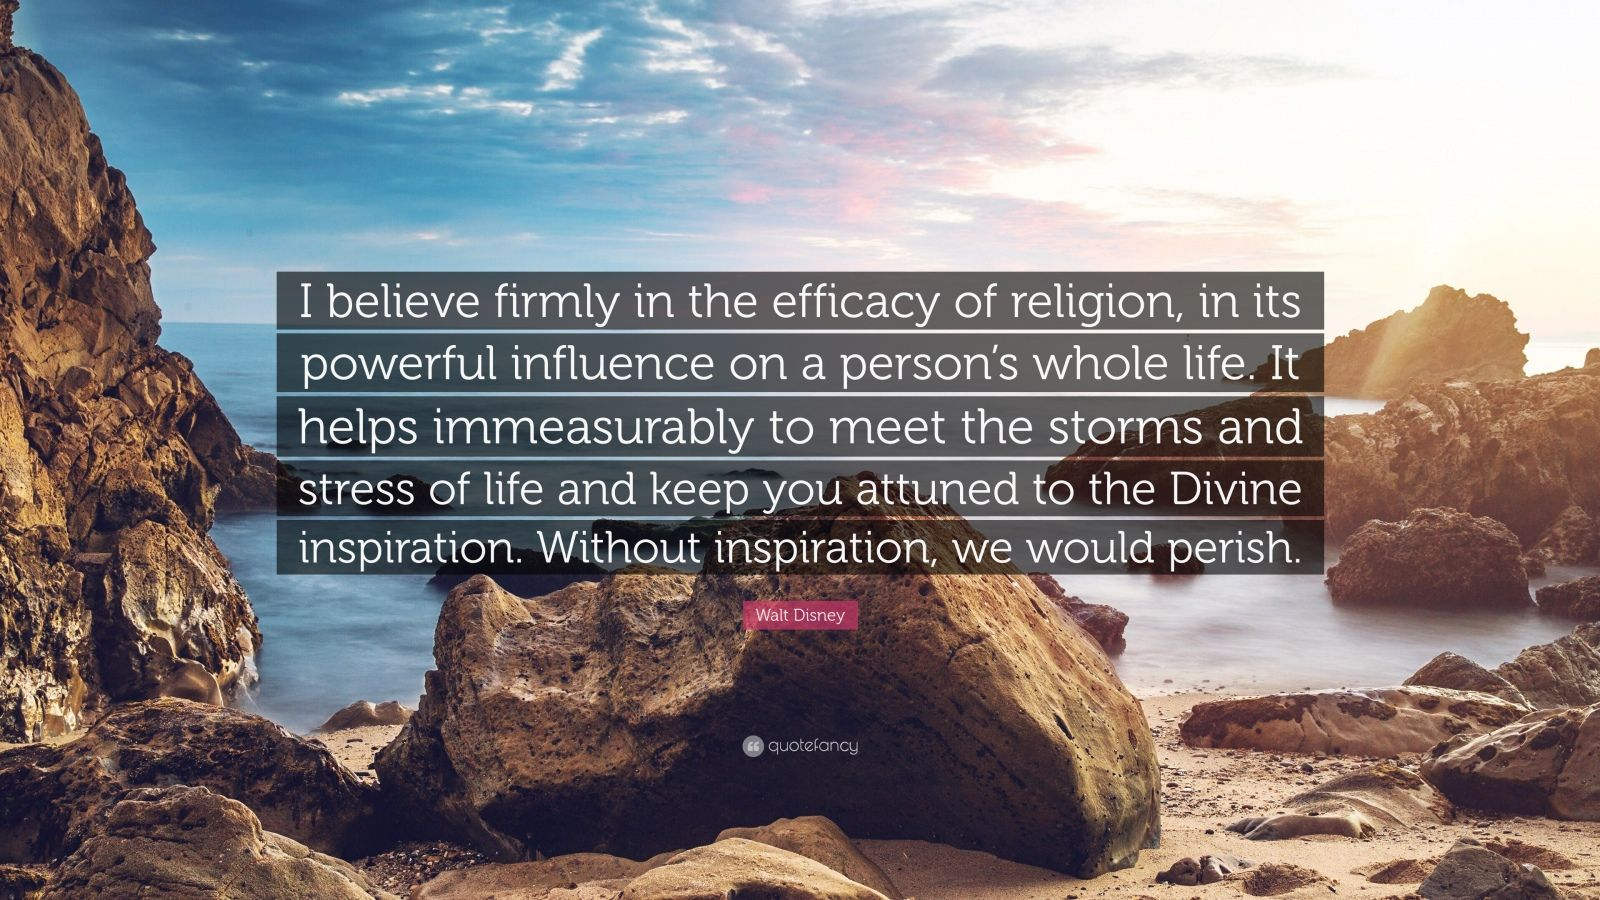 """Walt Disney Quote: """"I believe firmly in the efficacy of religion, in its powerful influence on a person's whole life. It helps immeasurably to meet the storms and stress of life and keep you attuned to the Divine inspiration. Without inspiration, we would perish."""""""